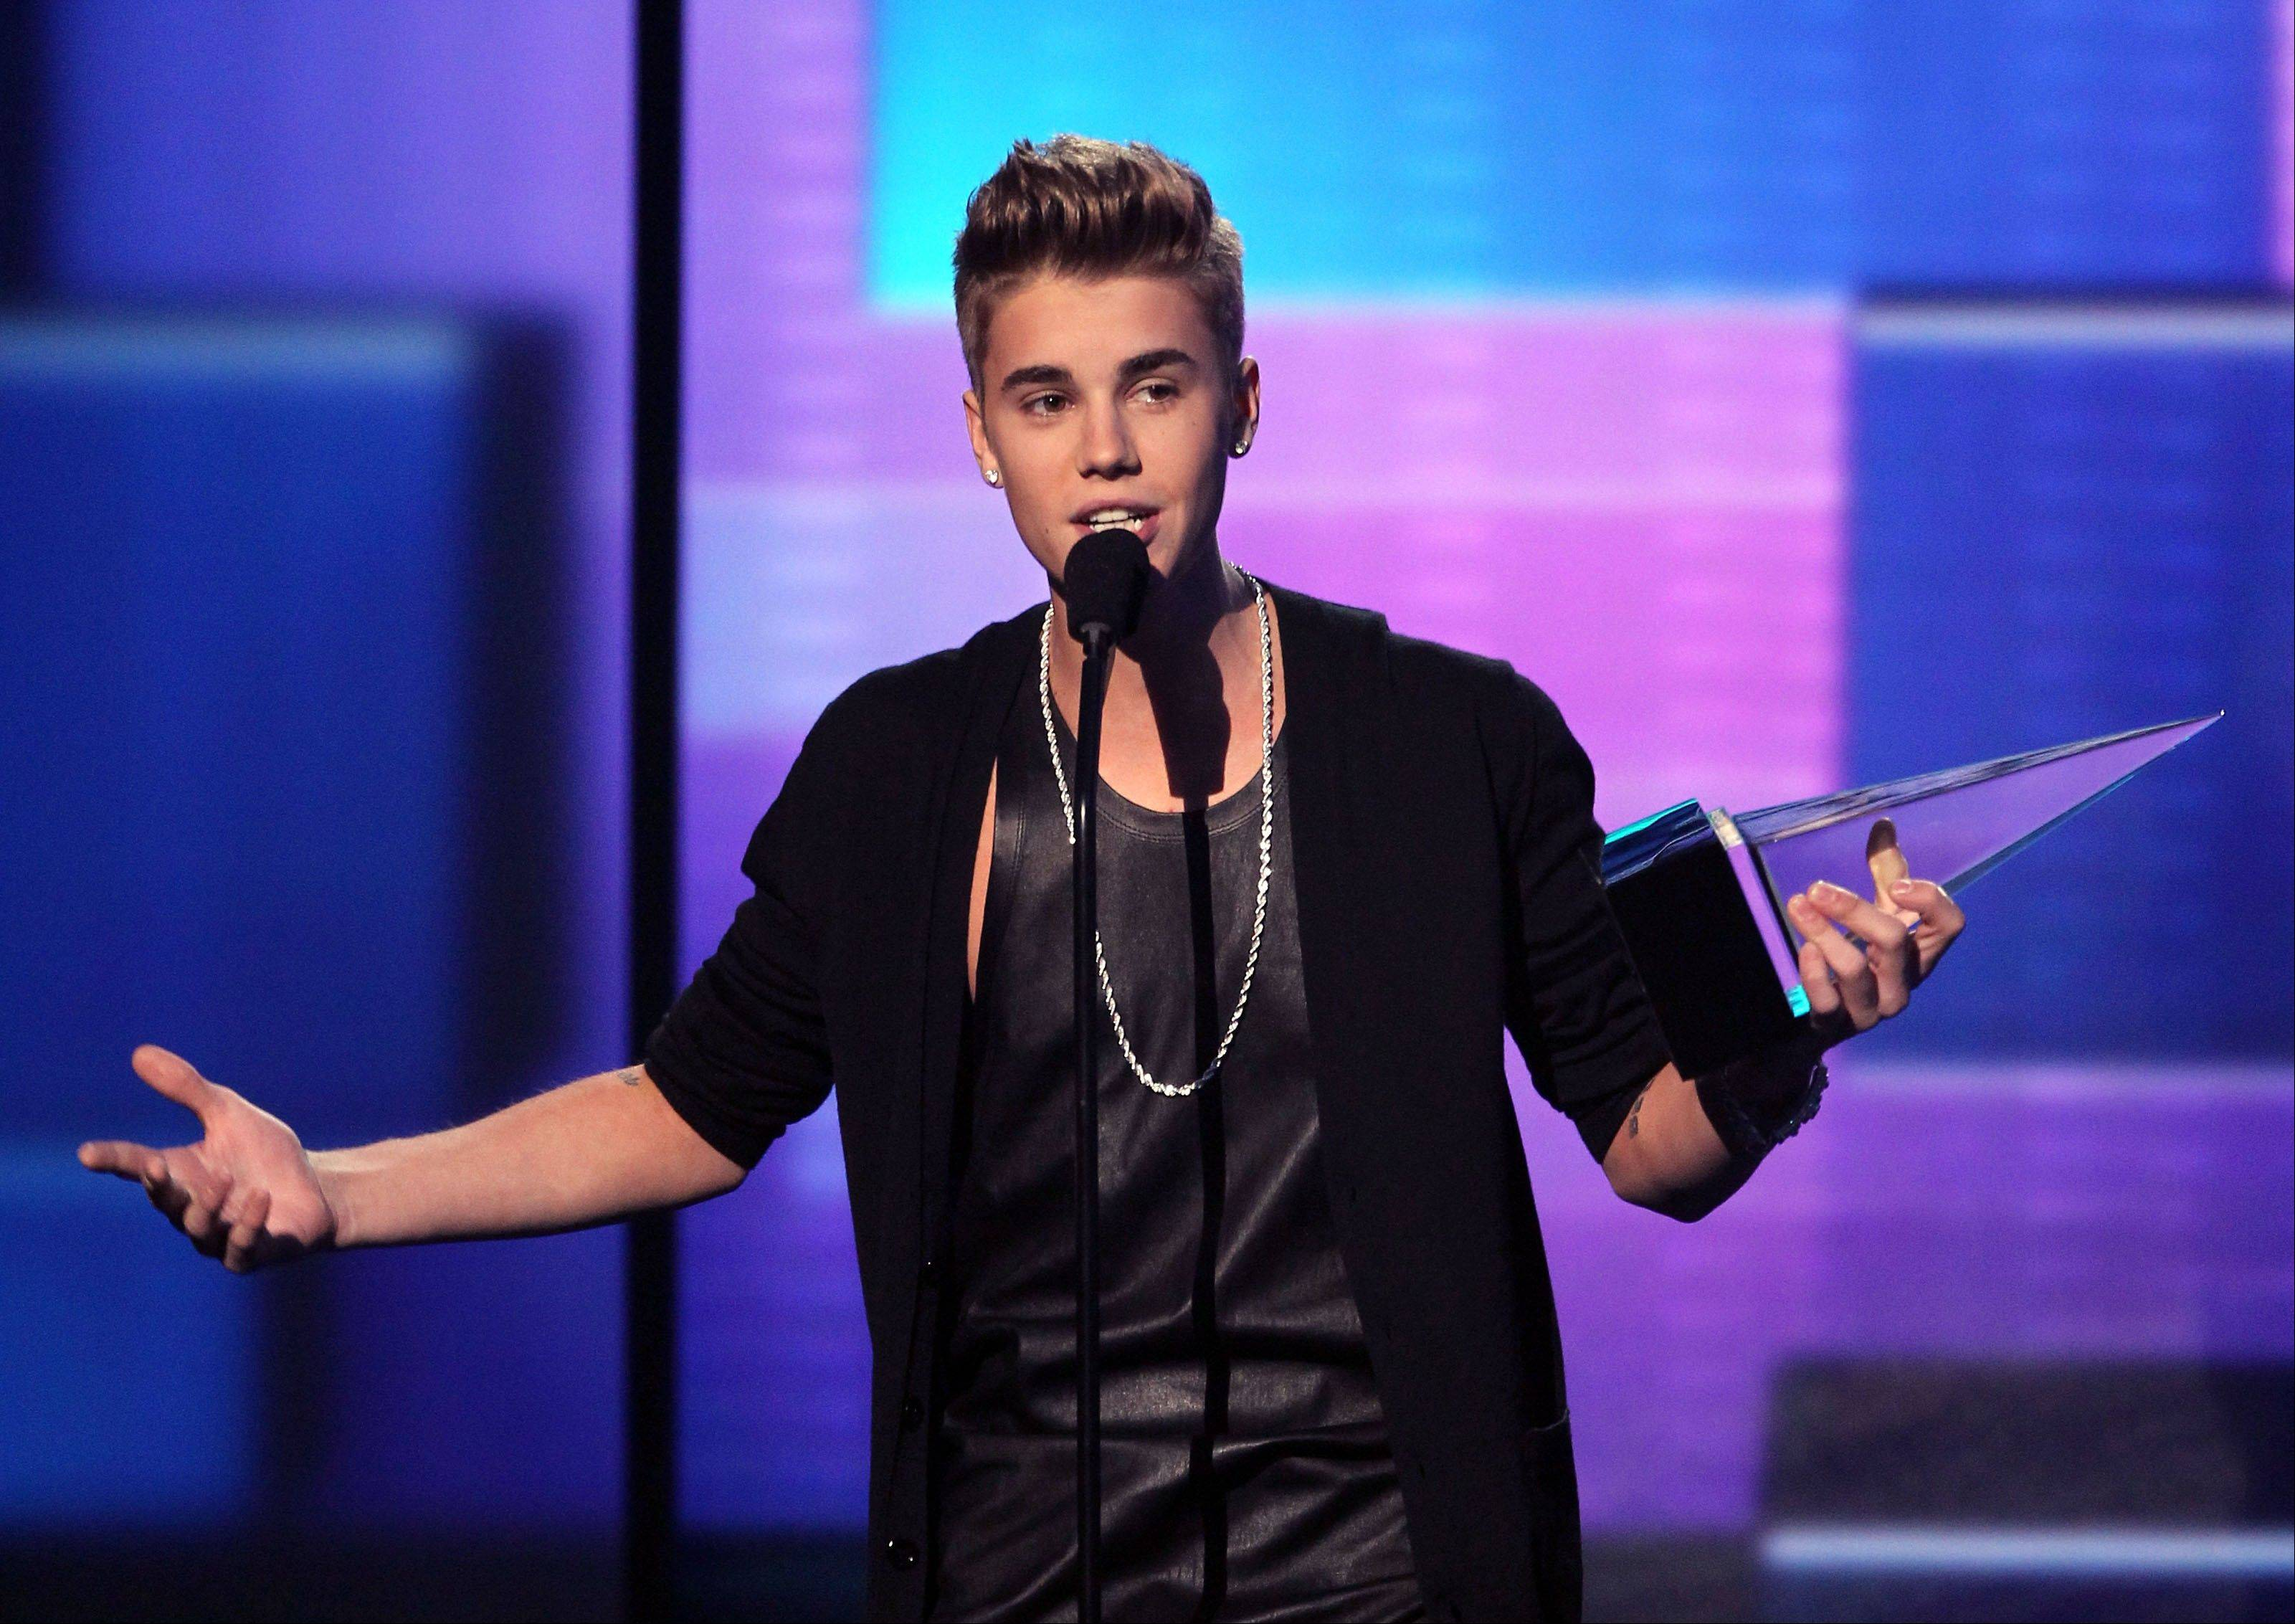 Justin Bieber accepts the award for favorite male artist - pop/rock at the 40th Annual American Music Awards on Sunday Nov. 18, 2012, in Los Angeles.